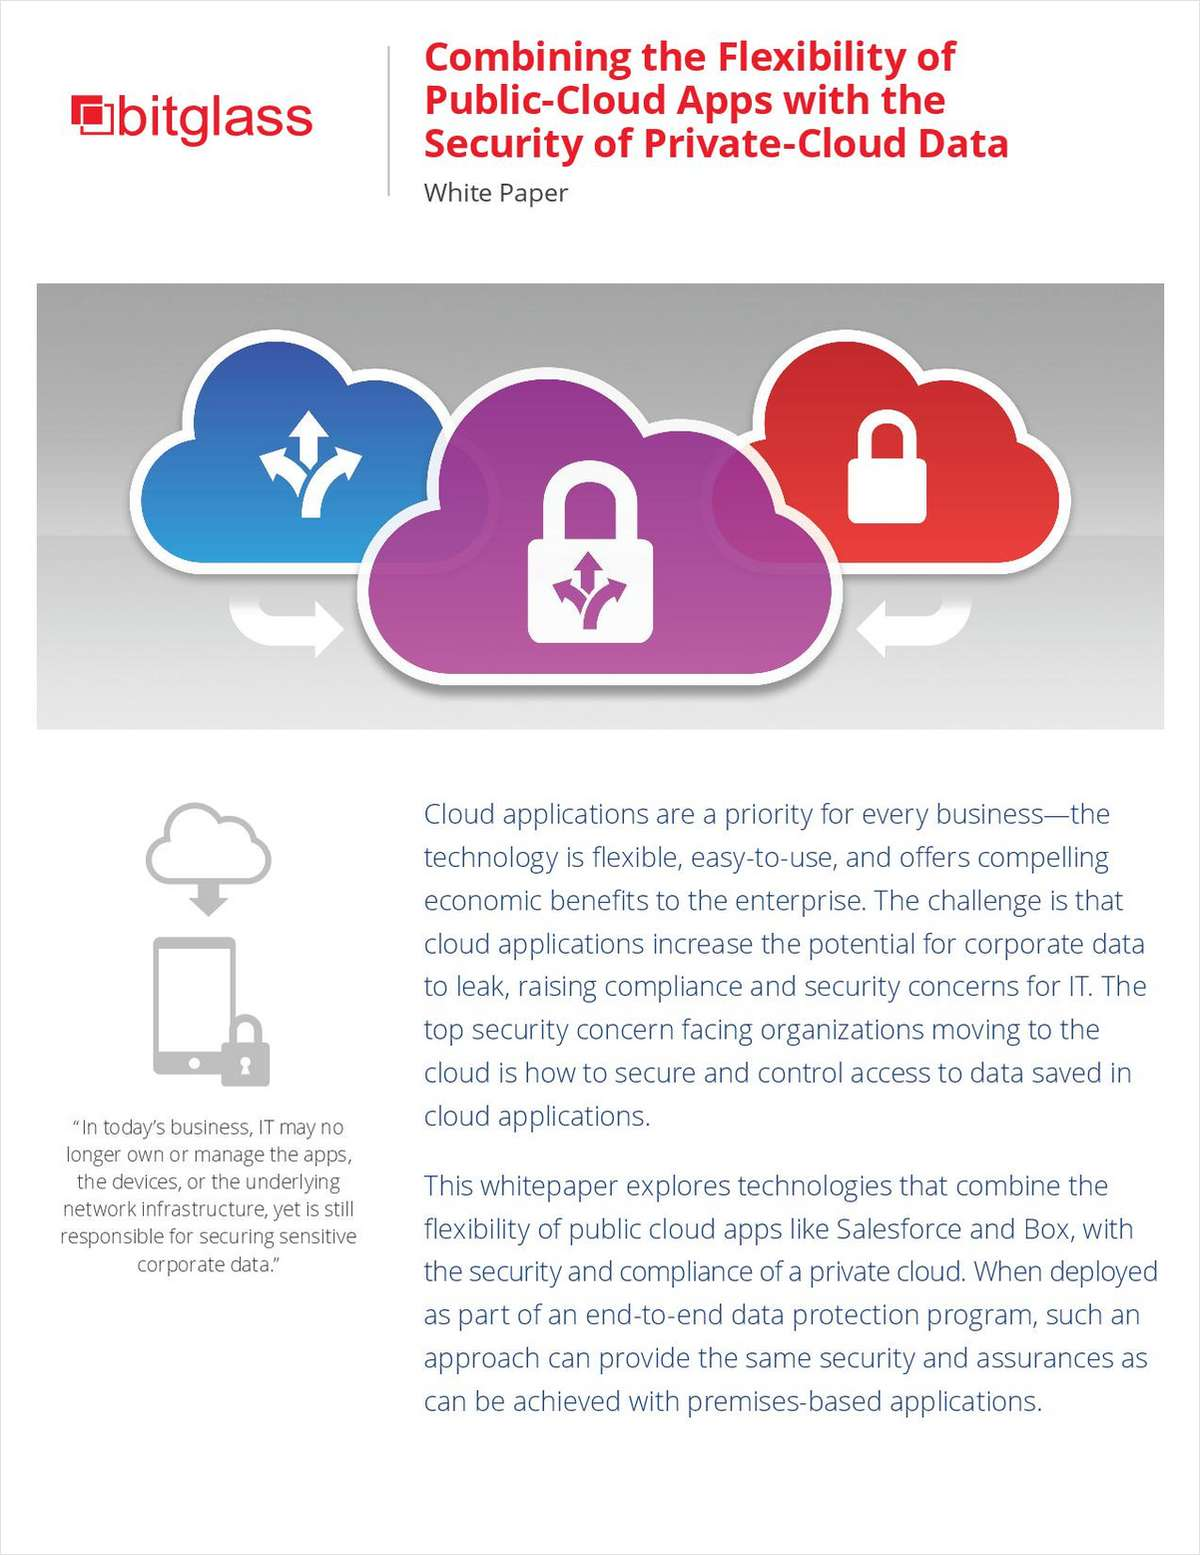 Public Cloud Flexibility, Private Cloud Security